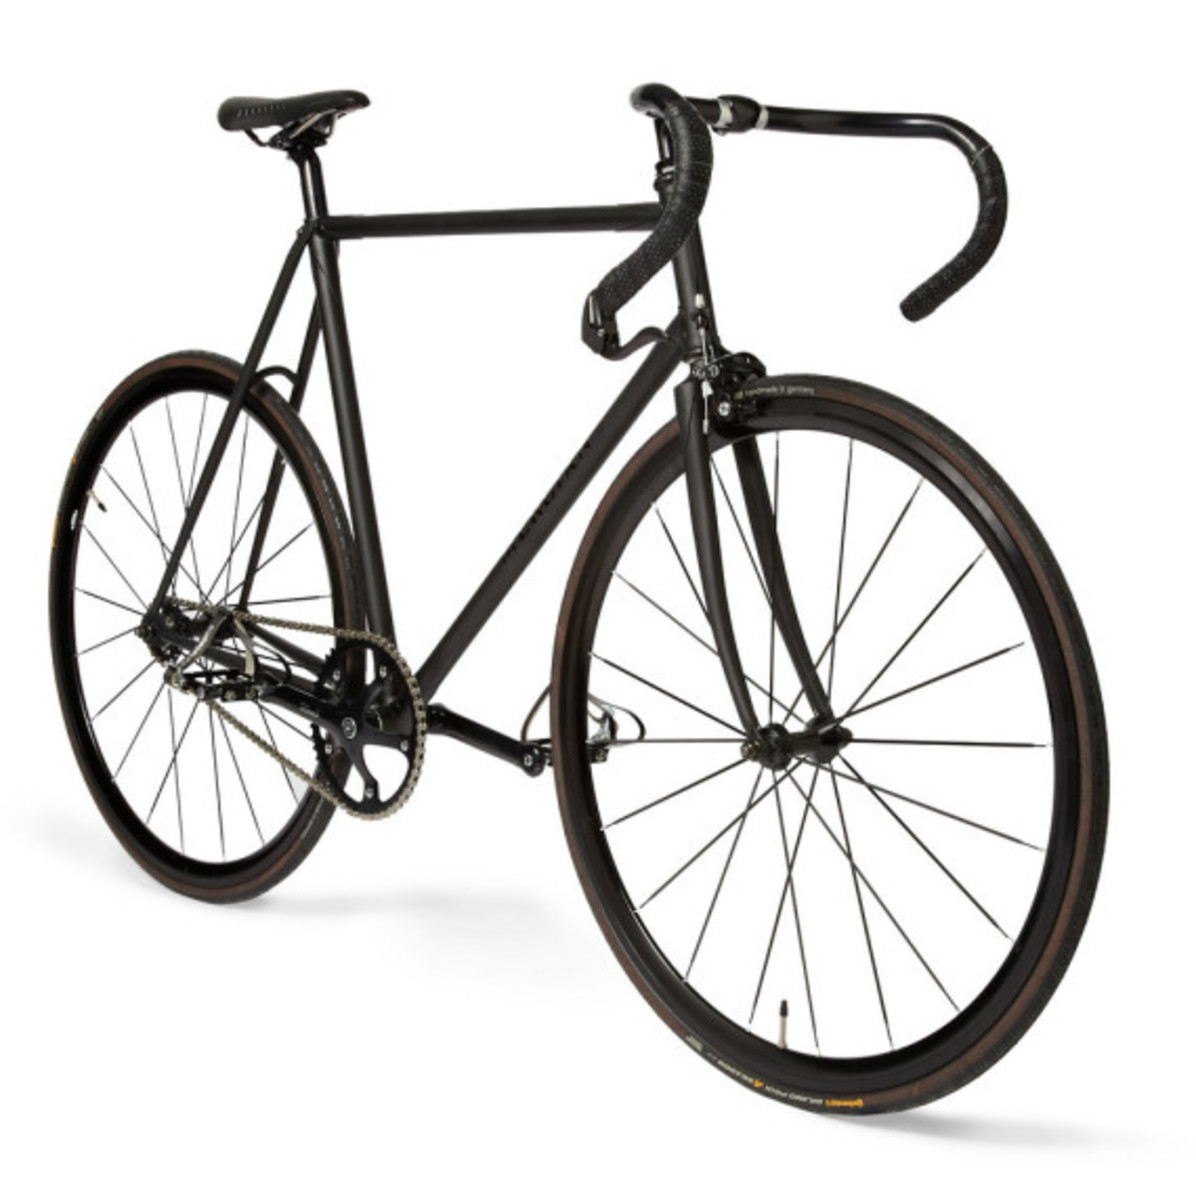 paul-smith-531-fixed-gear-bike-05